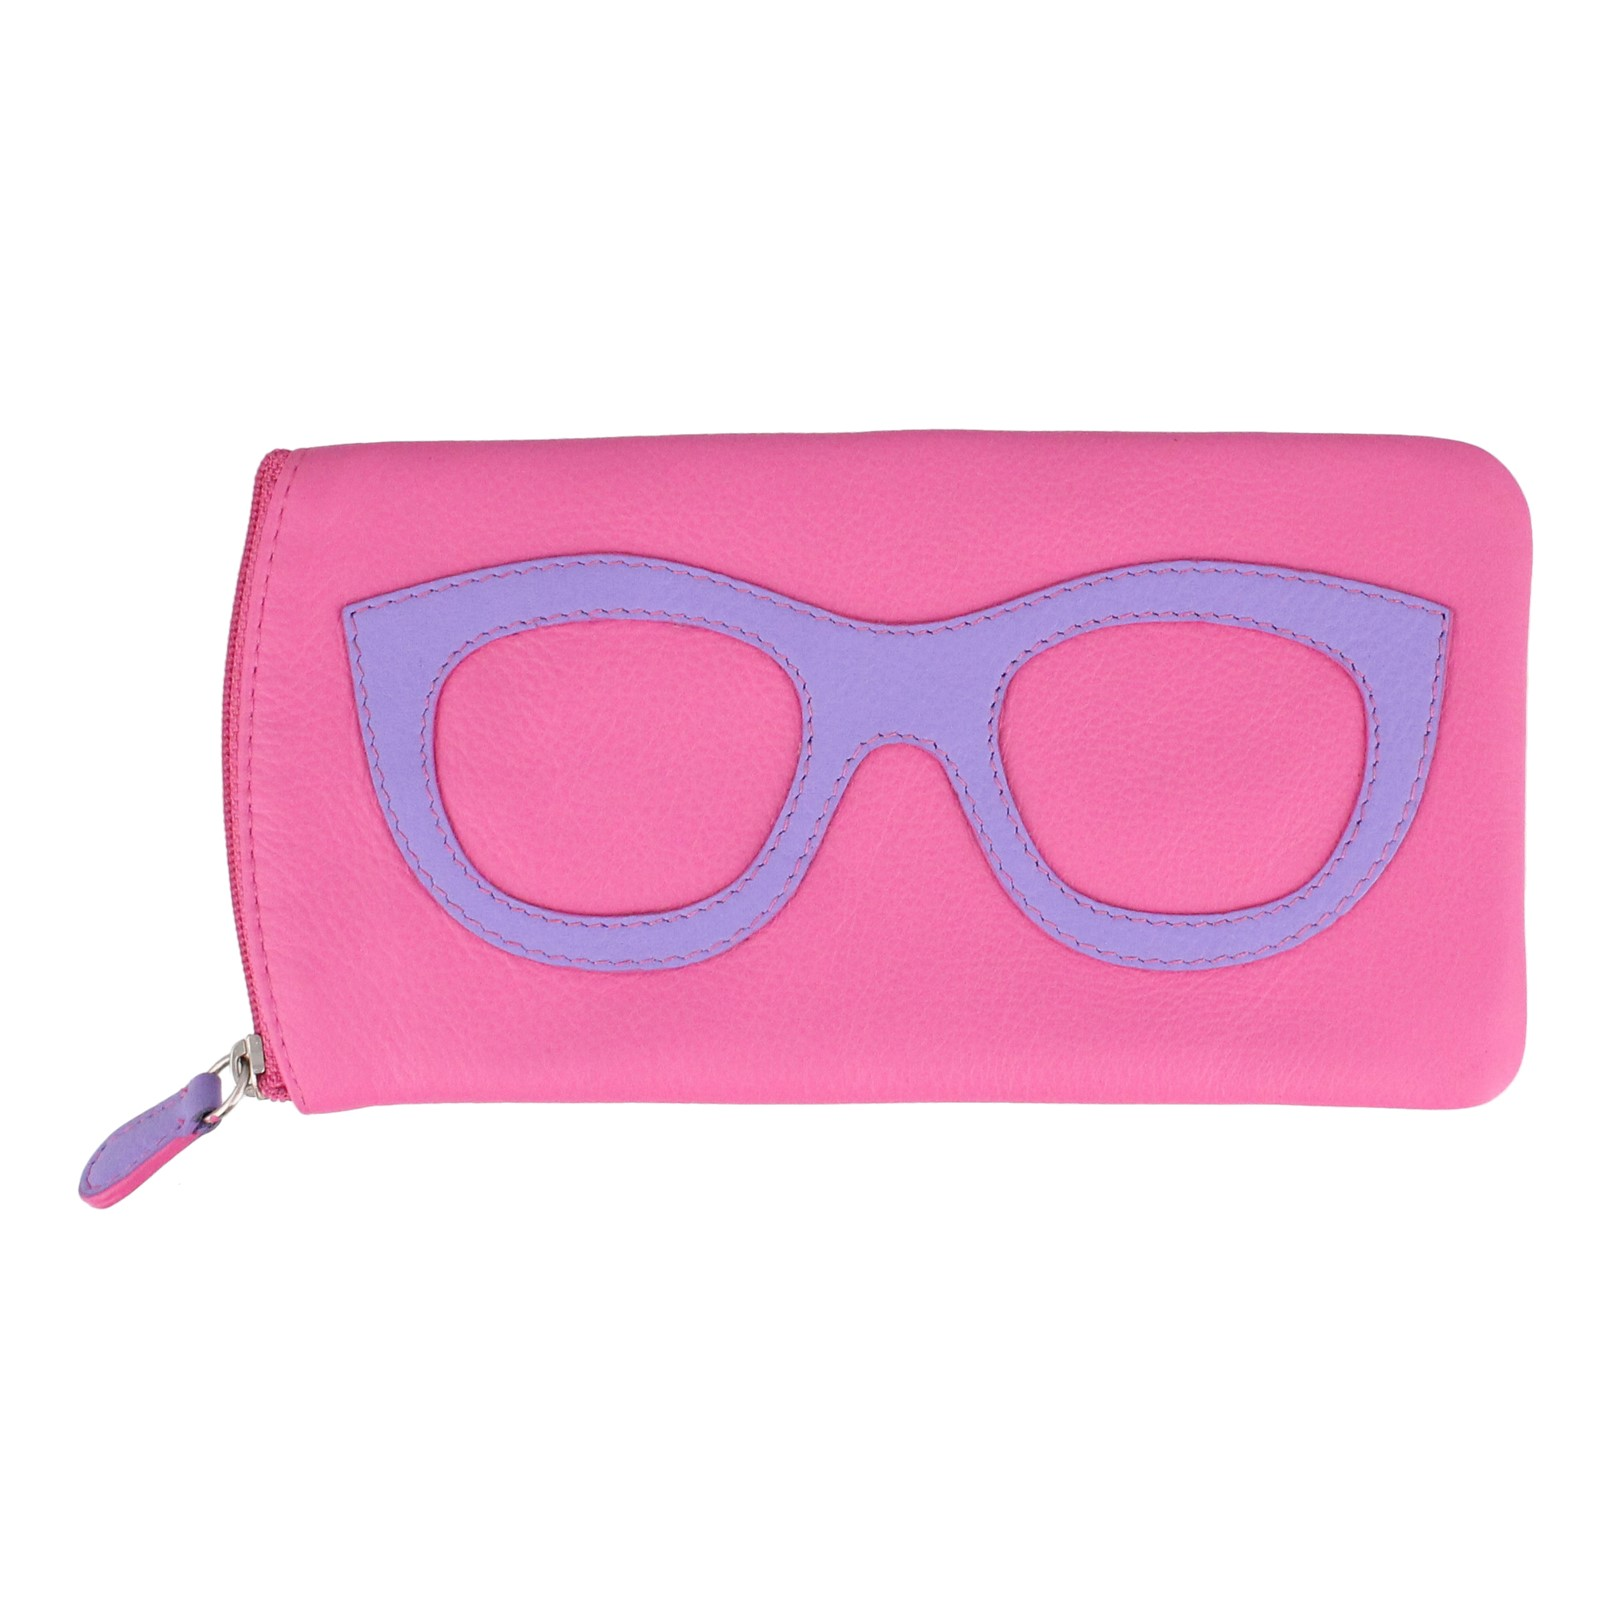 Women's ILI, Eyeglasses Case